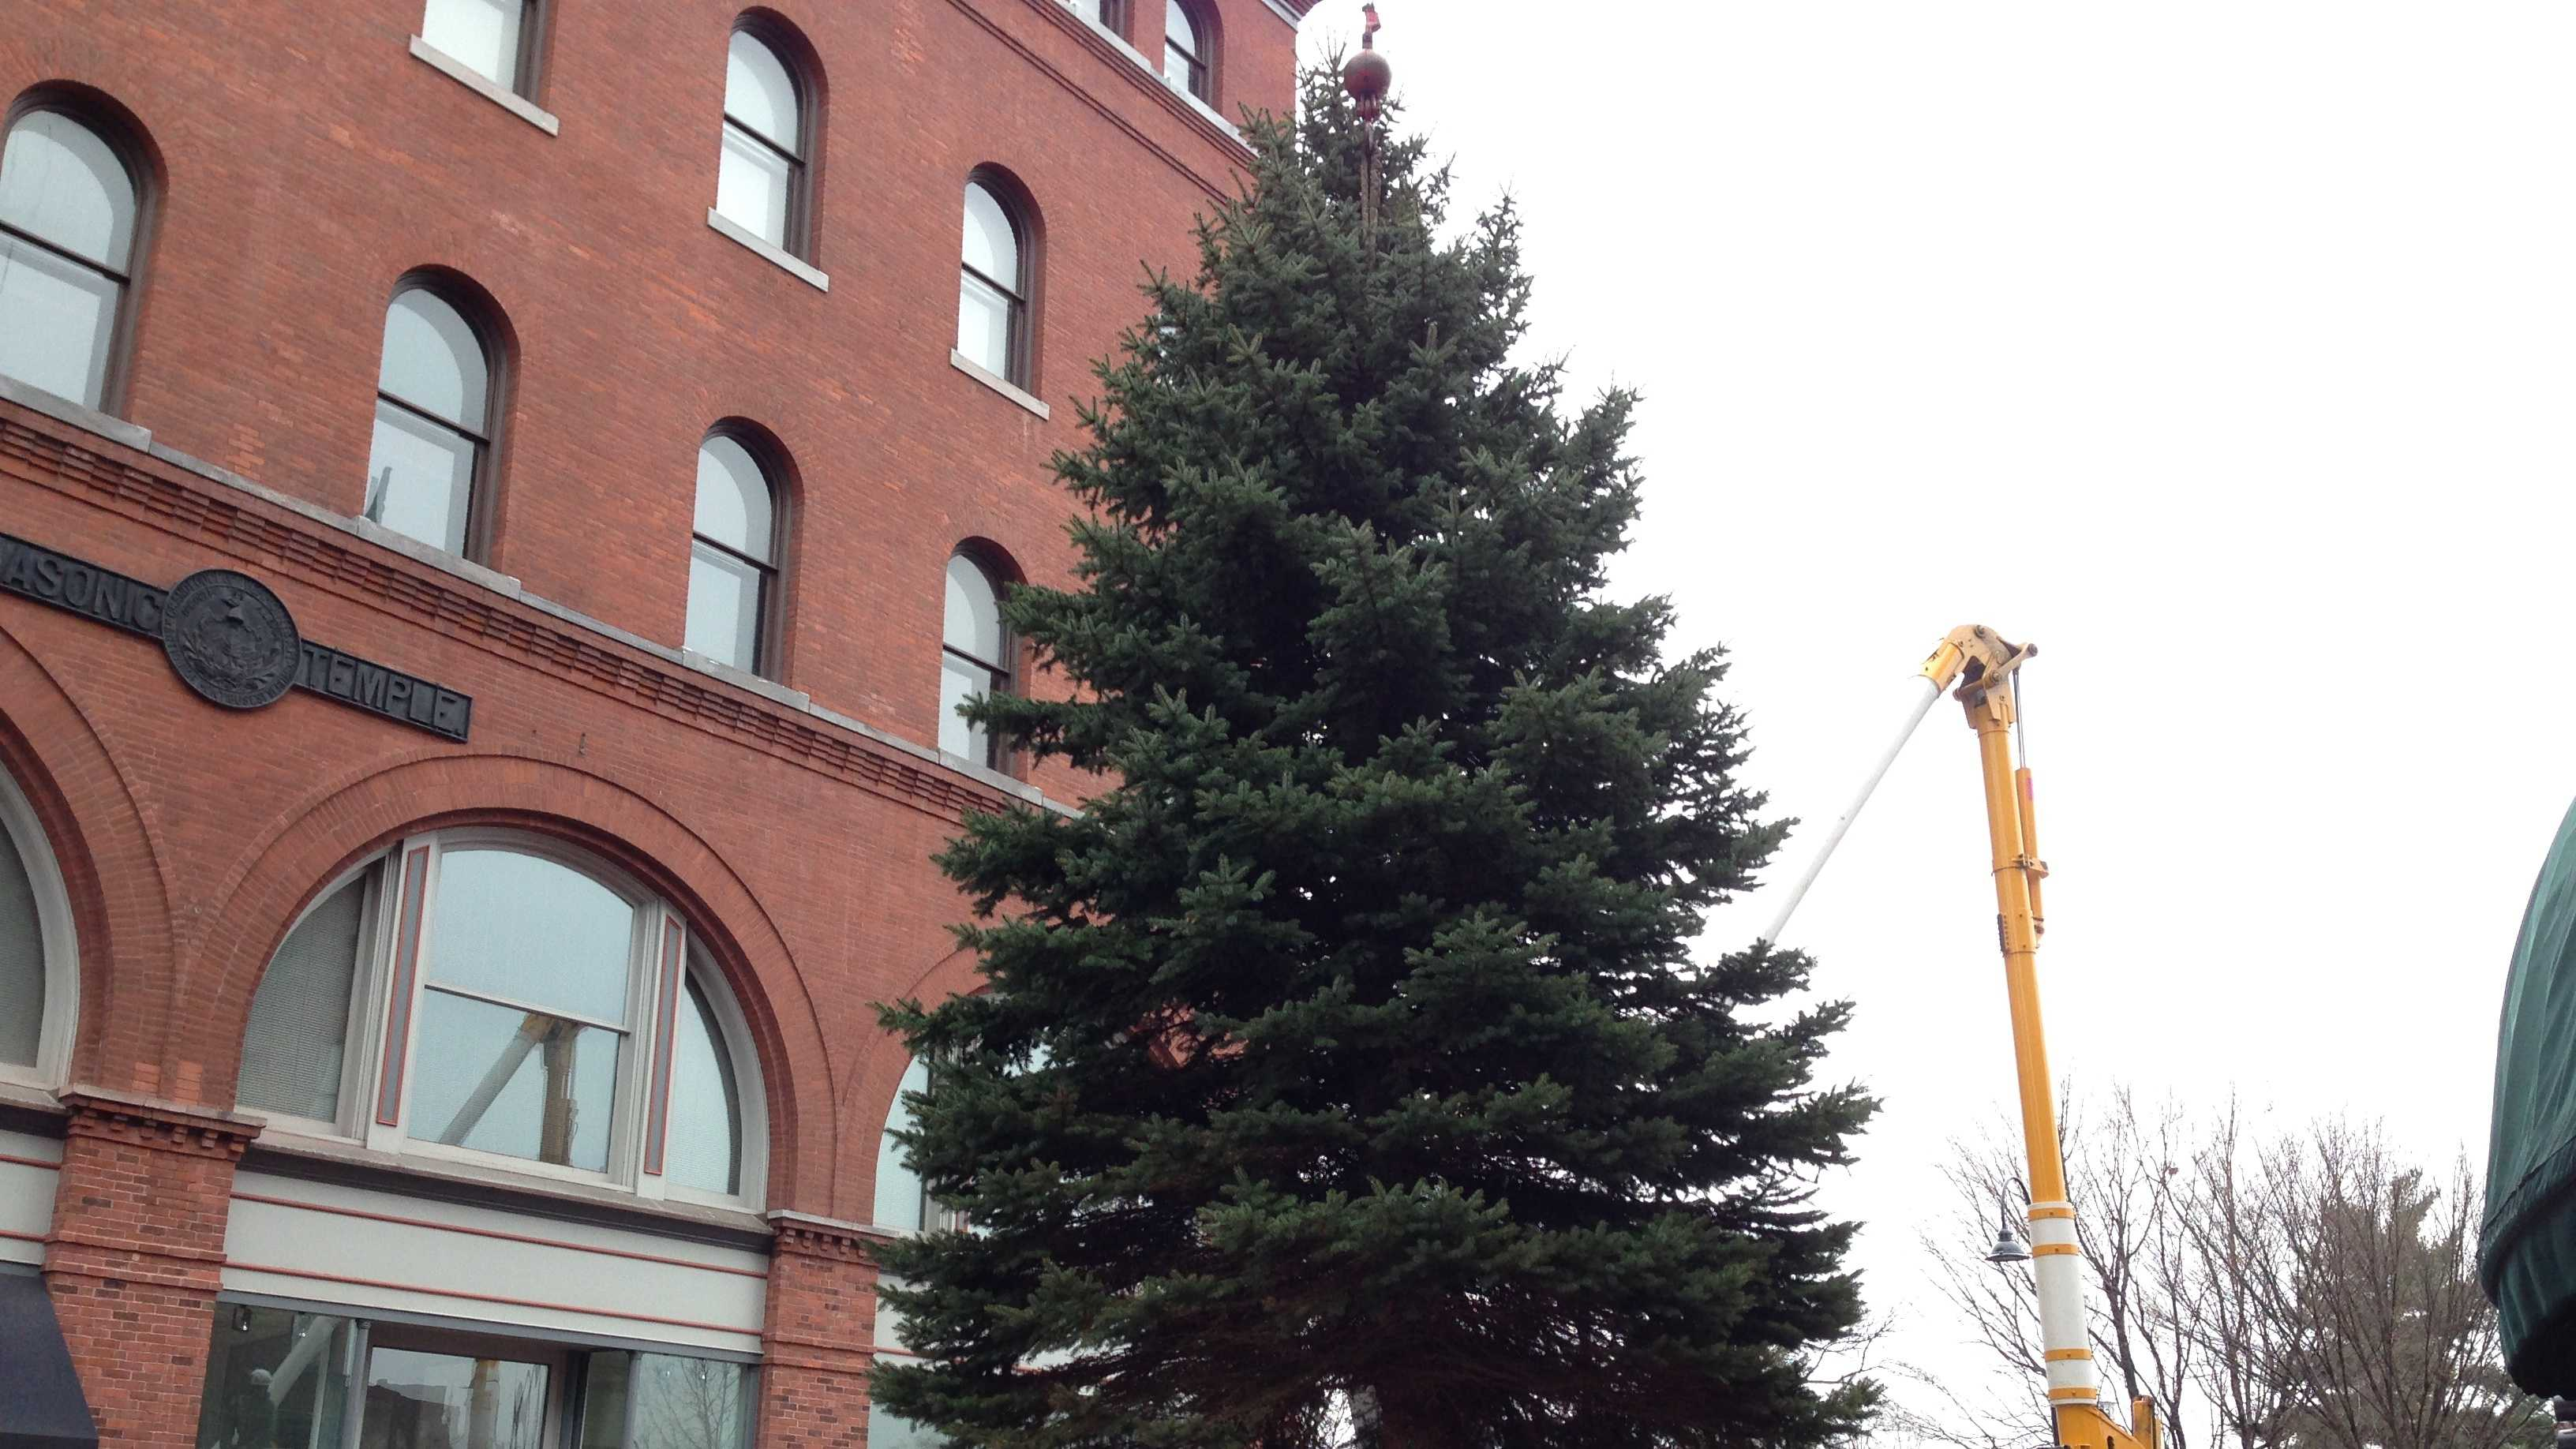 The 2013 Christmas tree arrives on the Church St. Marketplace.